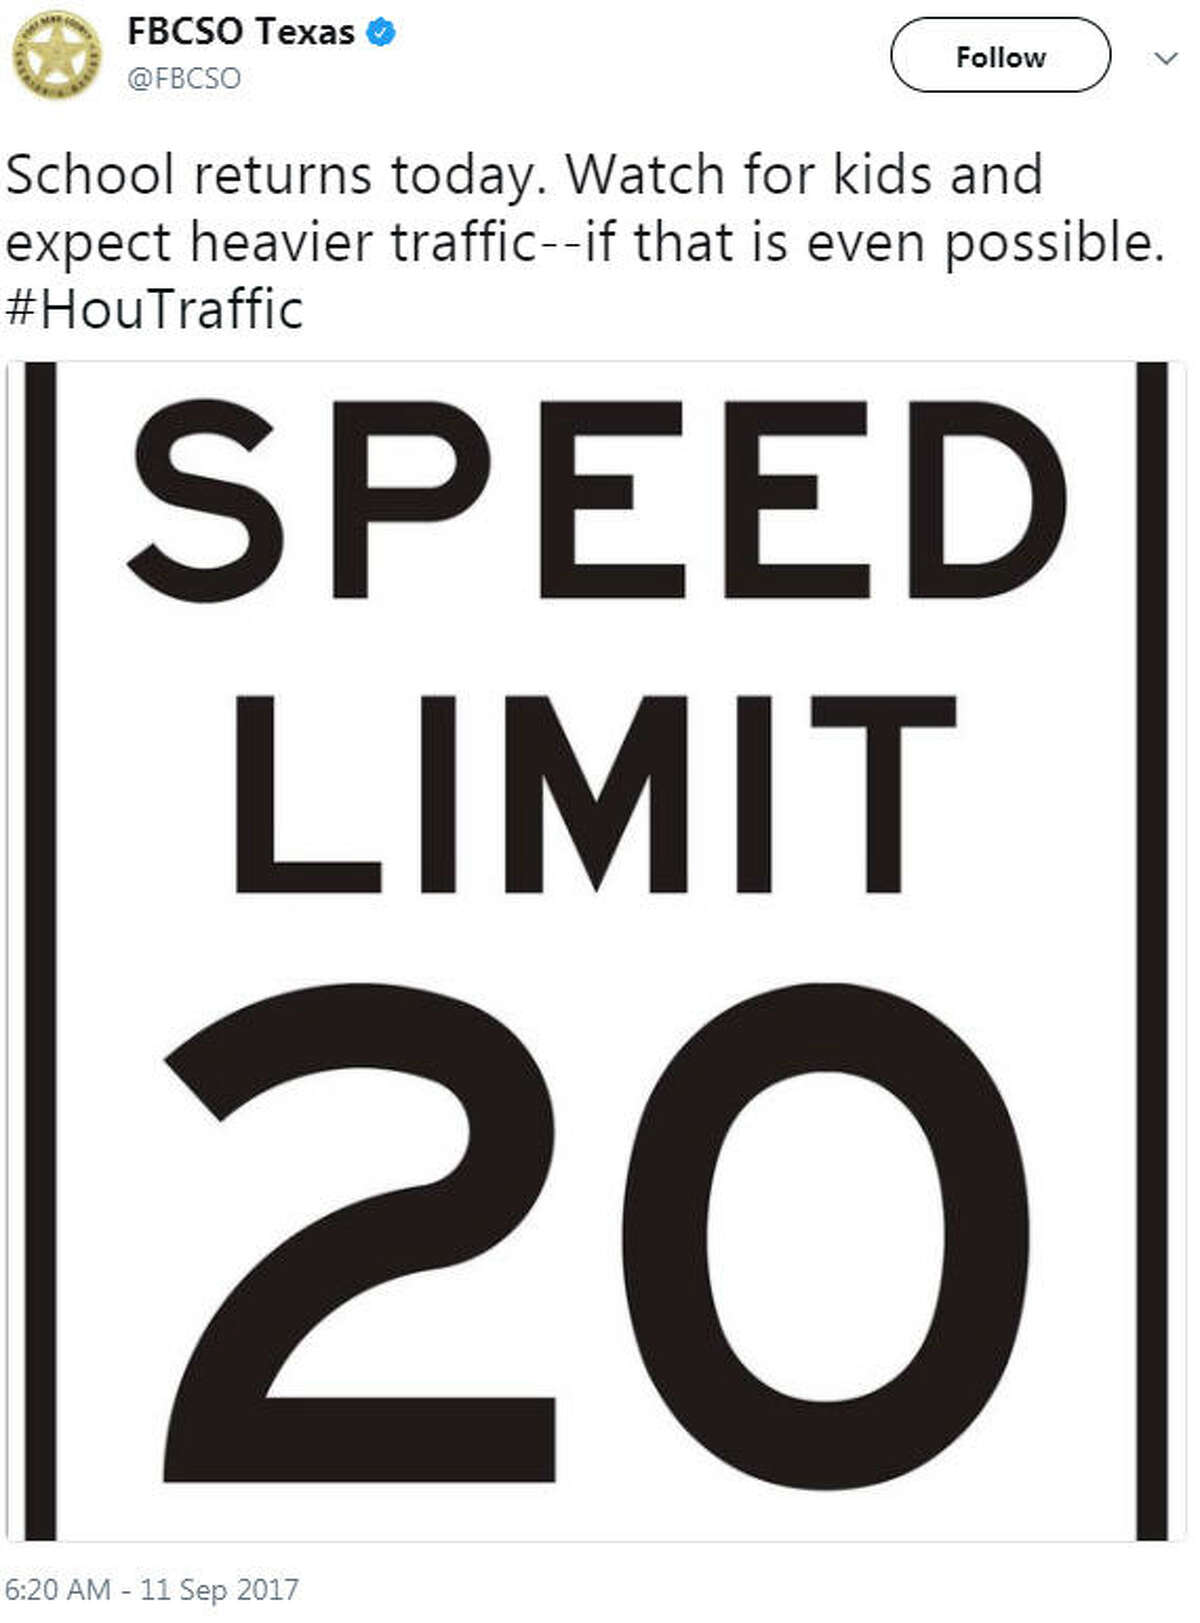 """""""School returns today. Watch for kids and expect heavier traffic--if that is even possible. #HouTraffic"""" Source: Twitter"""